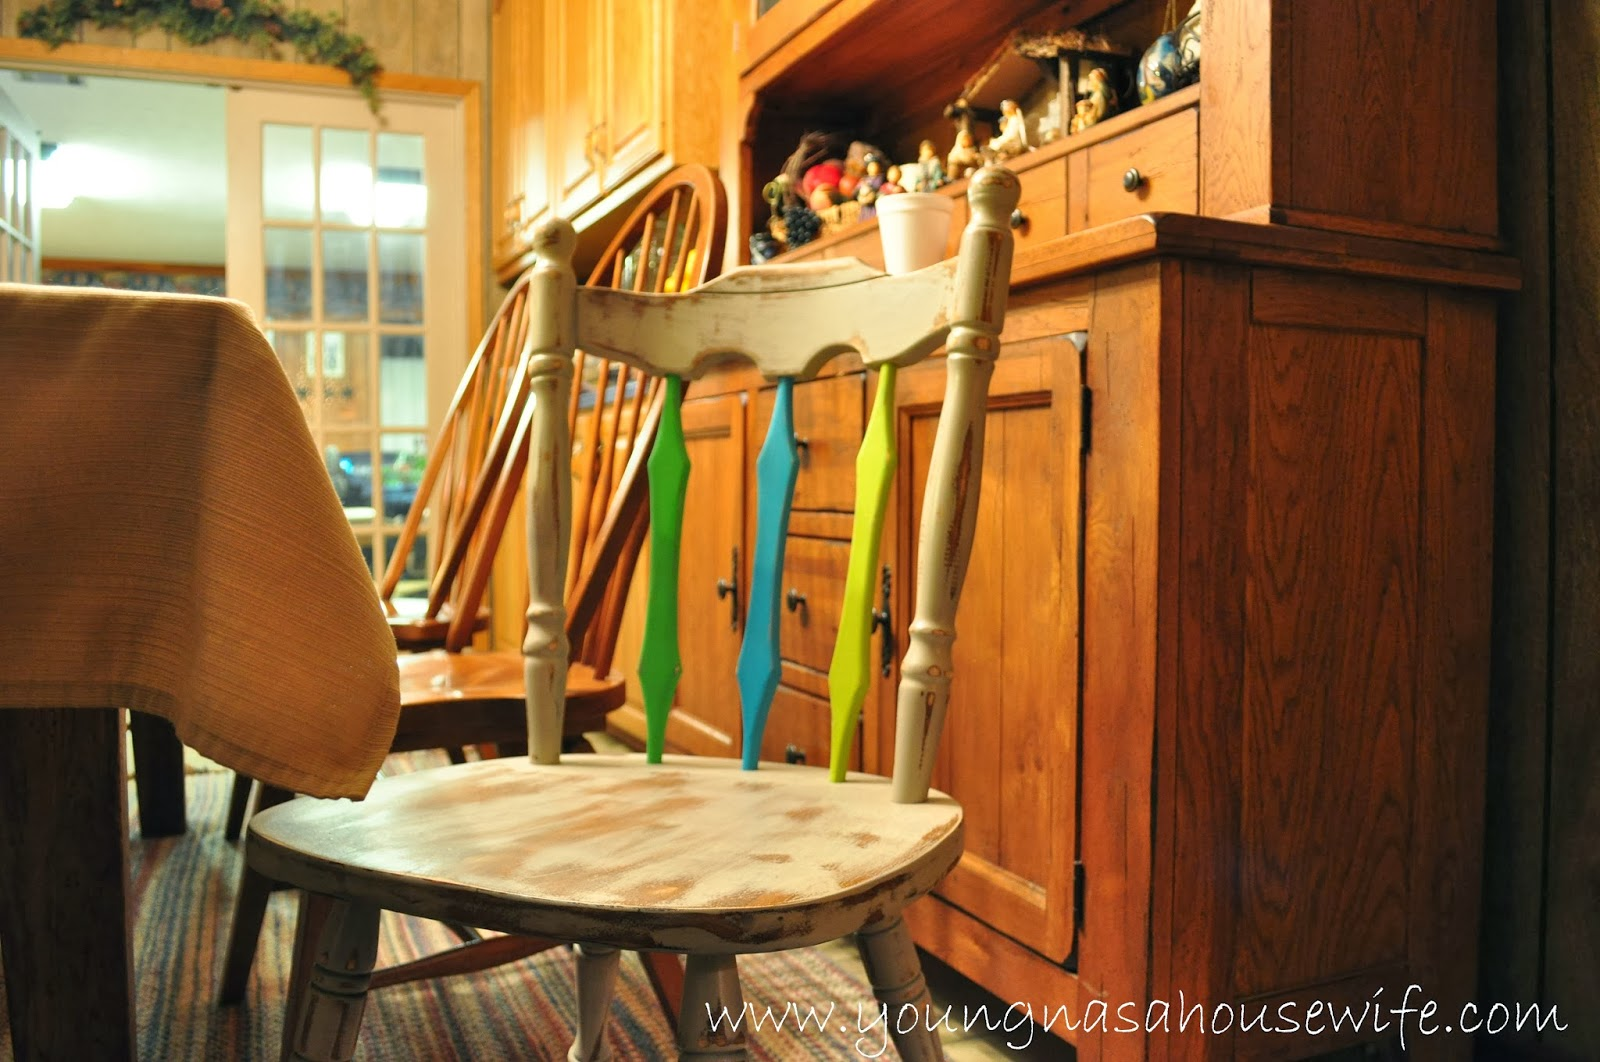 Young Nasa Housewife Statement Chairs One Kings Lane